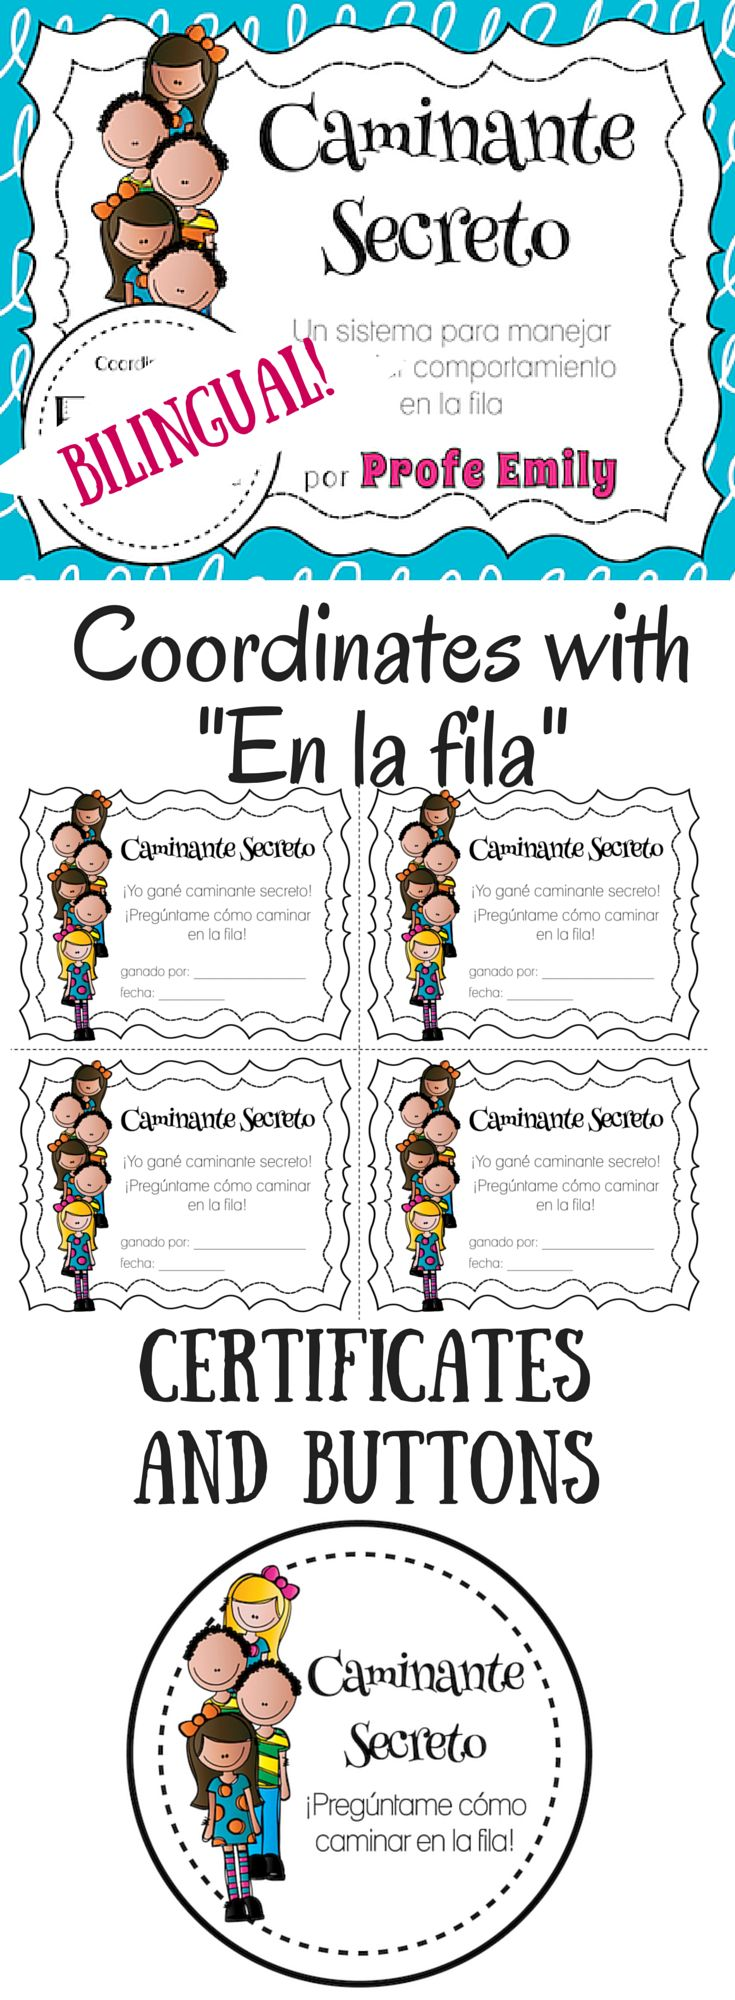 """Bilingual """"Secret Walker"""" resources for classroom management - matches """"En la fila"""" posters perfectly! By Profe Emily"""